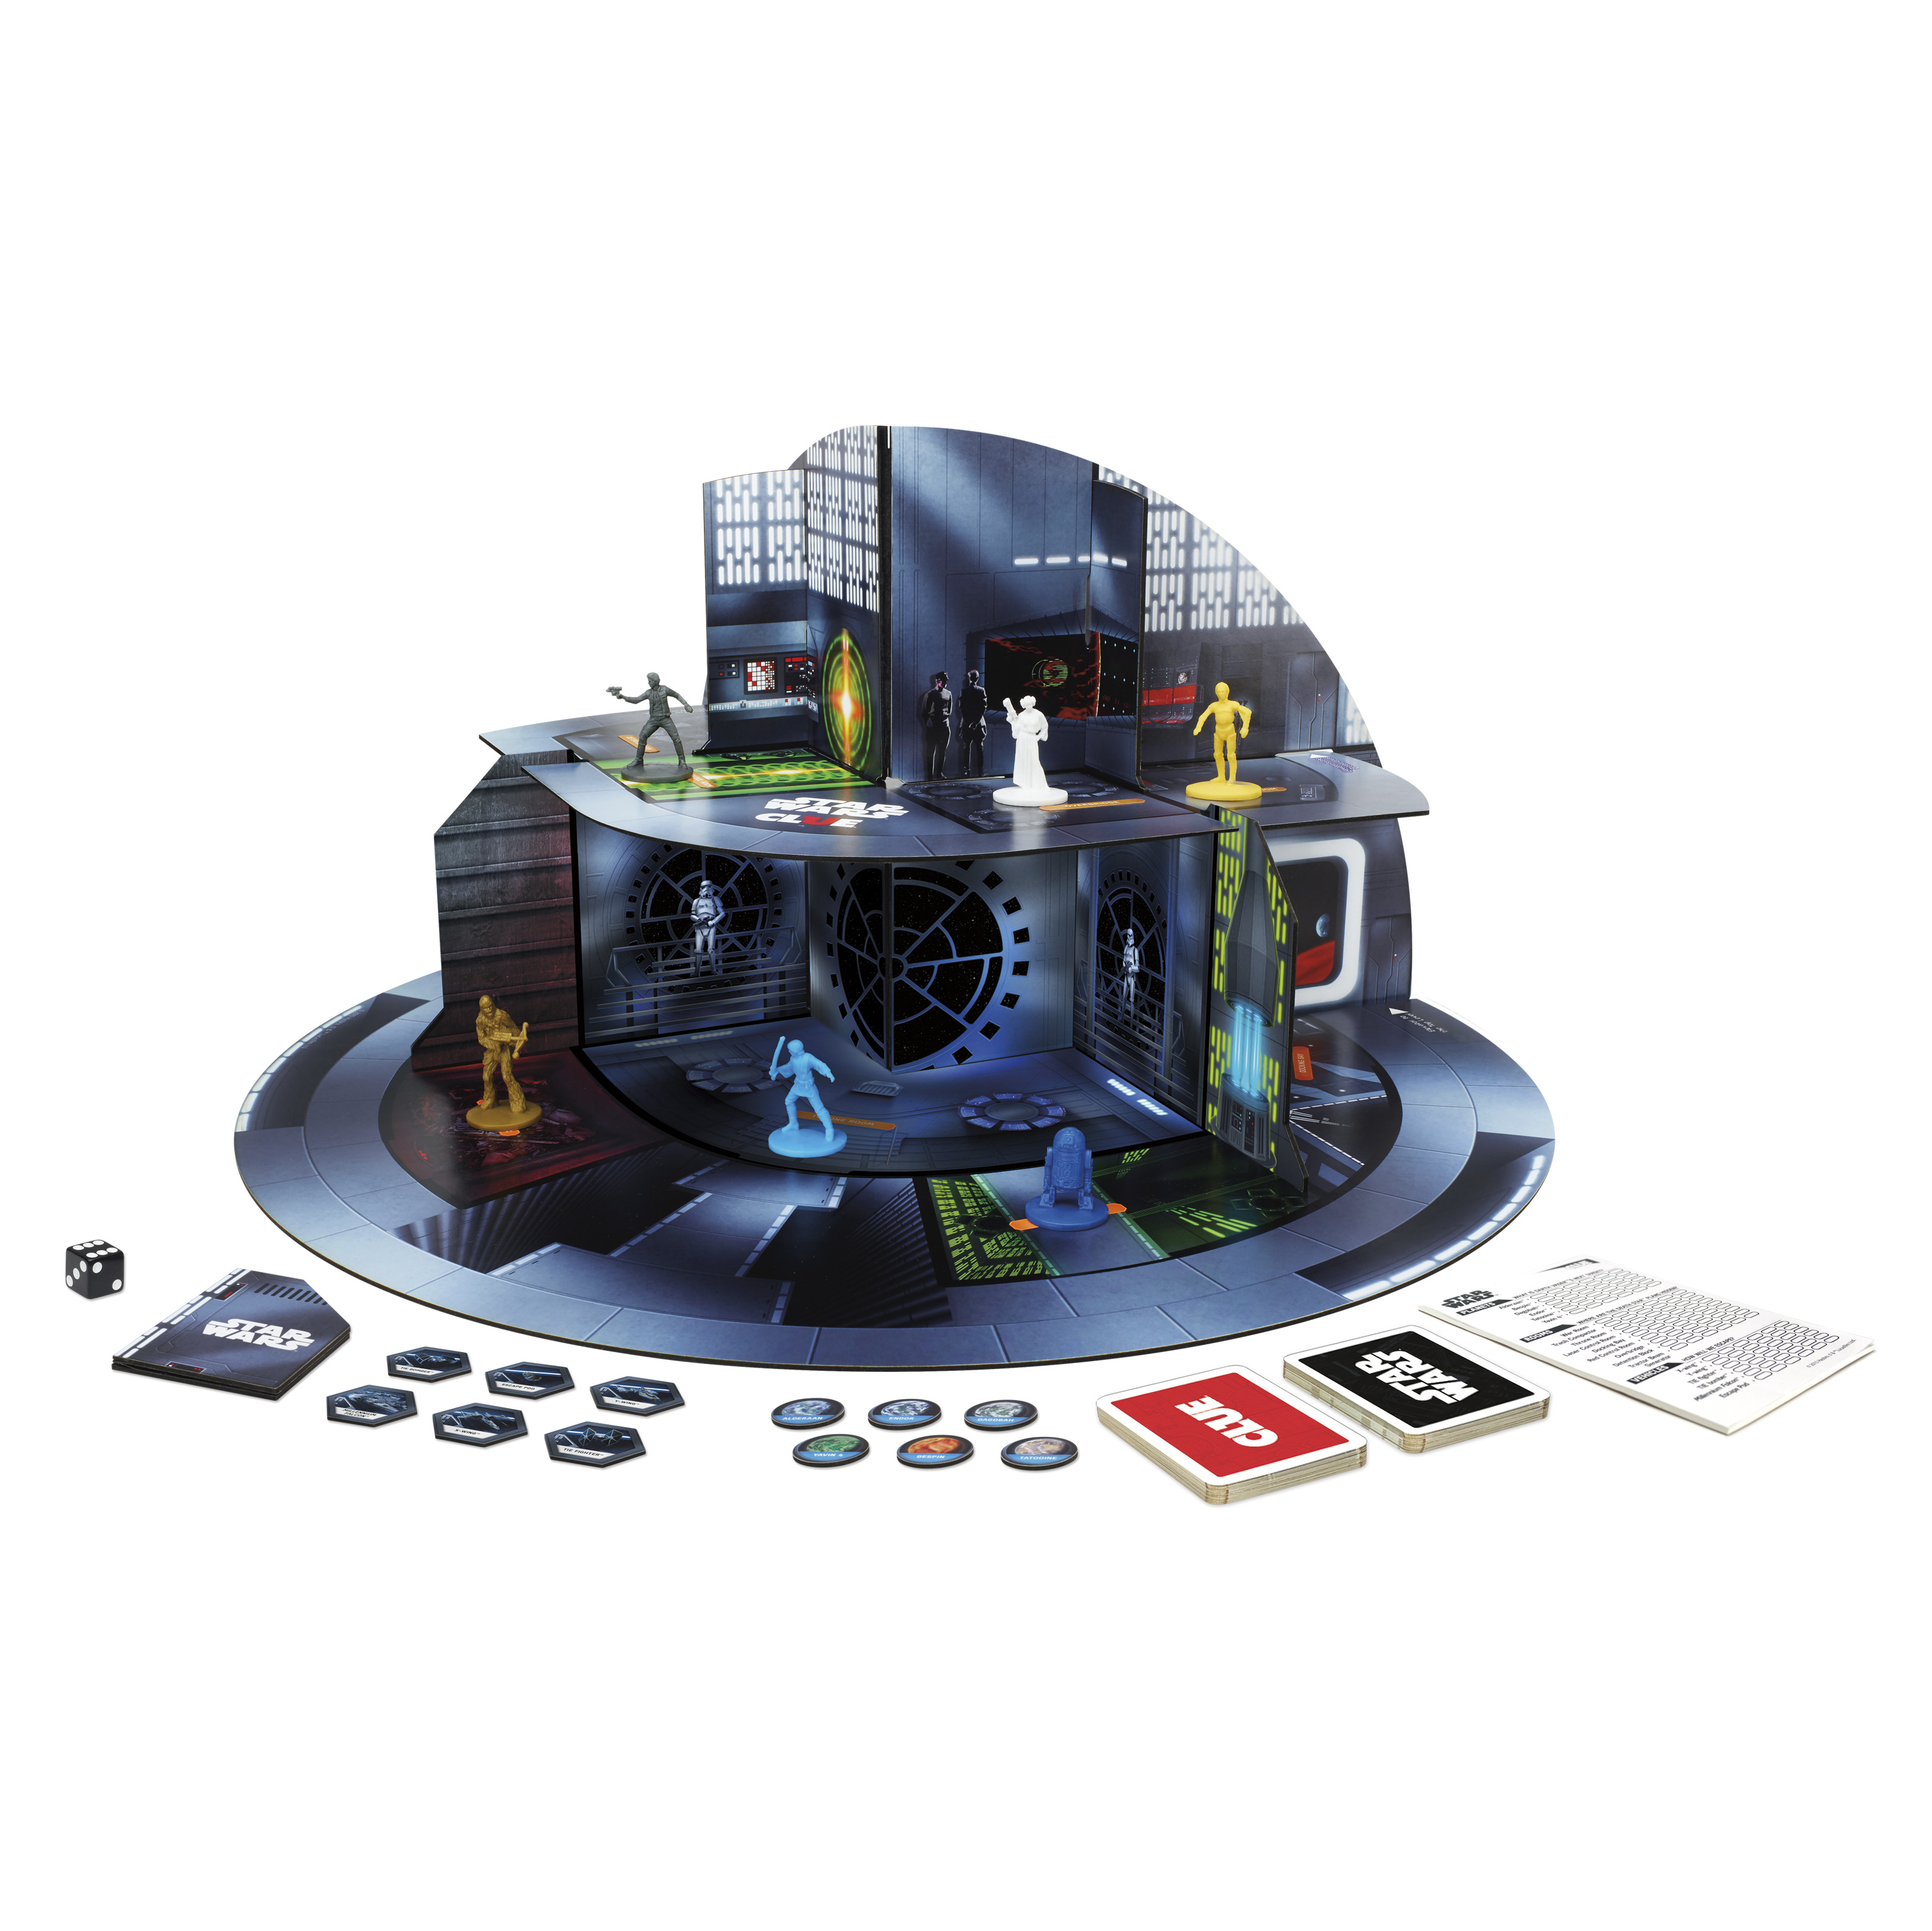 clue-star-wars-edition-game